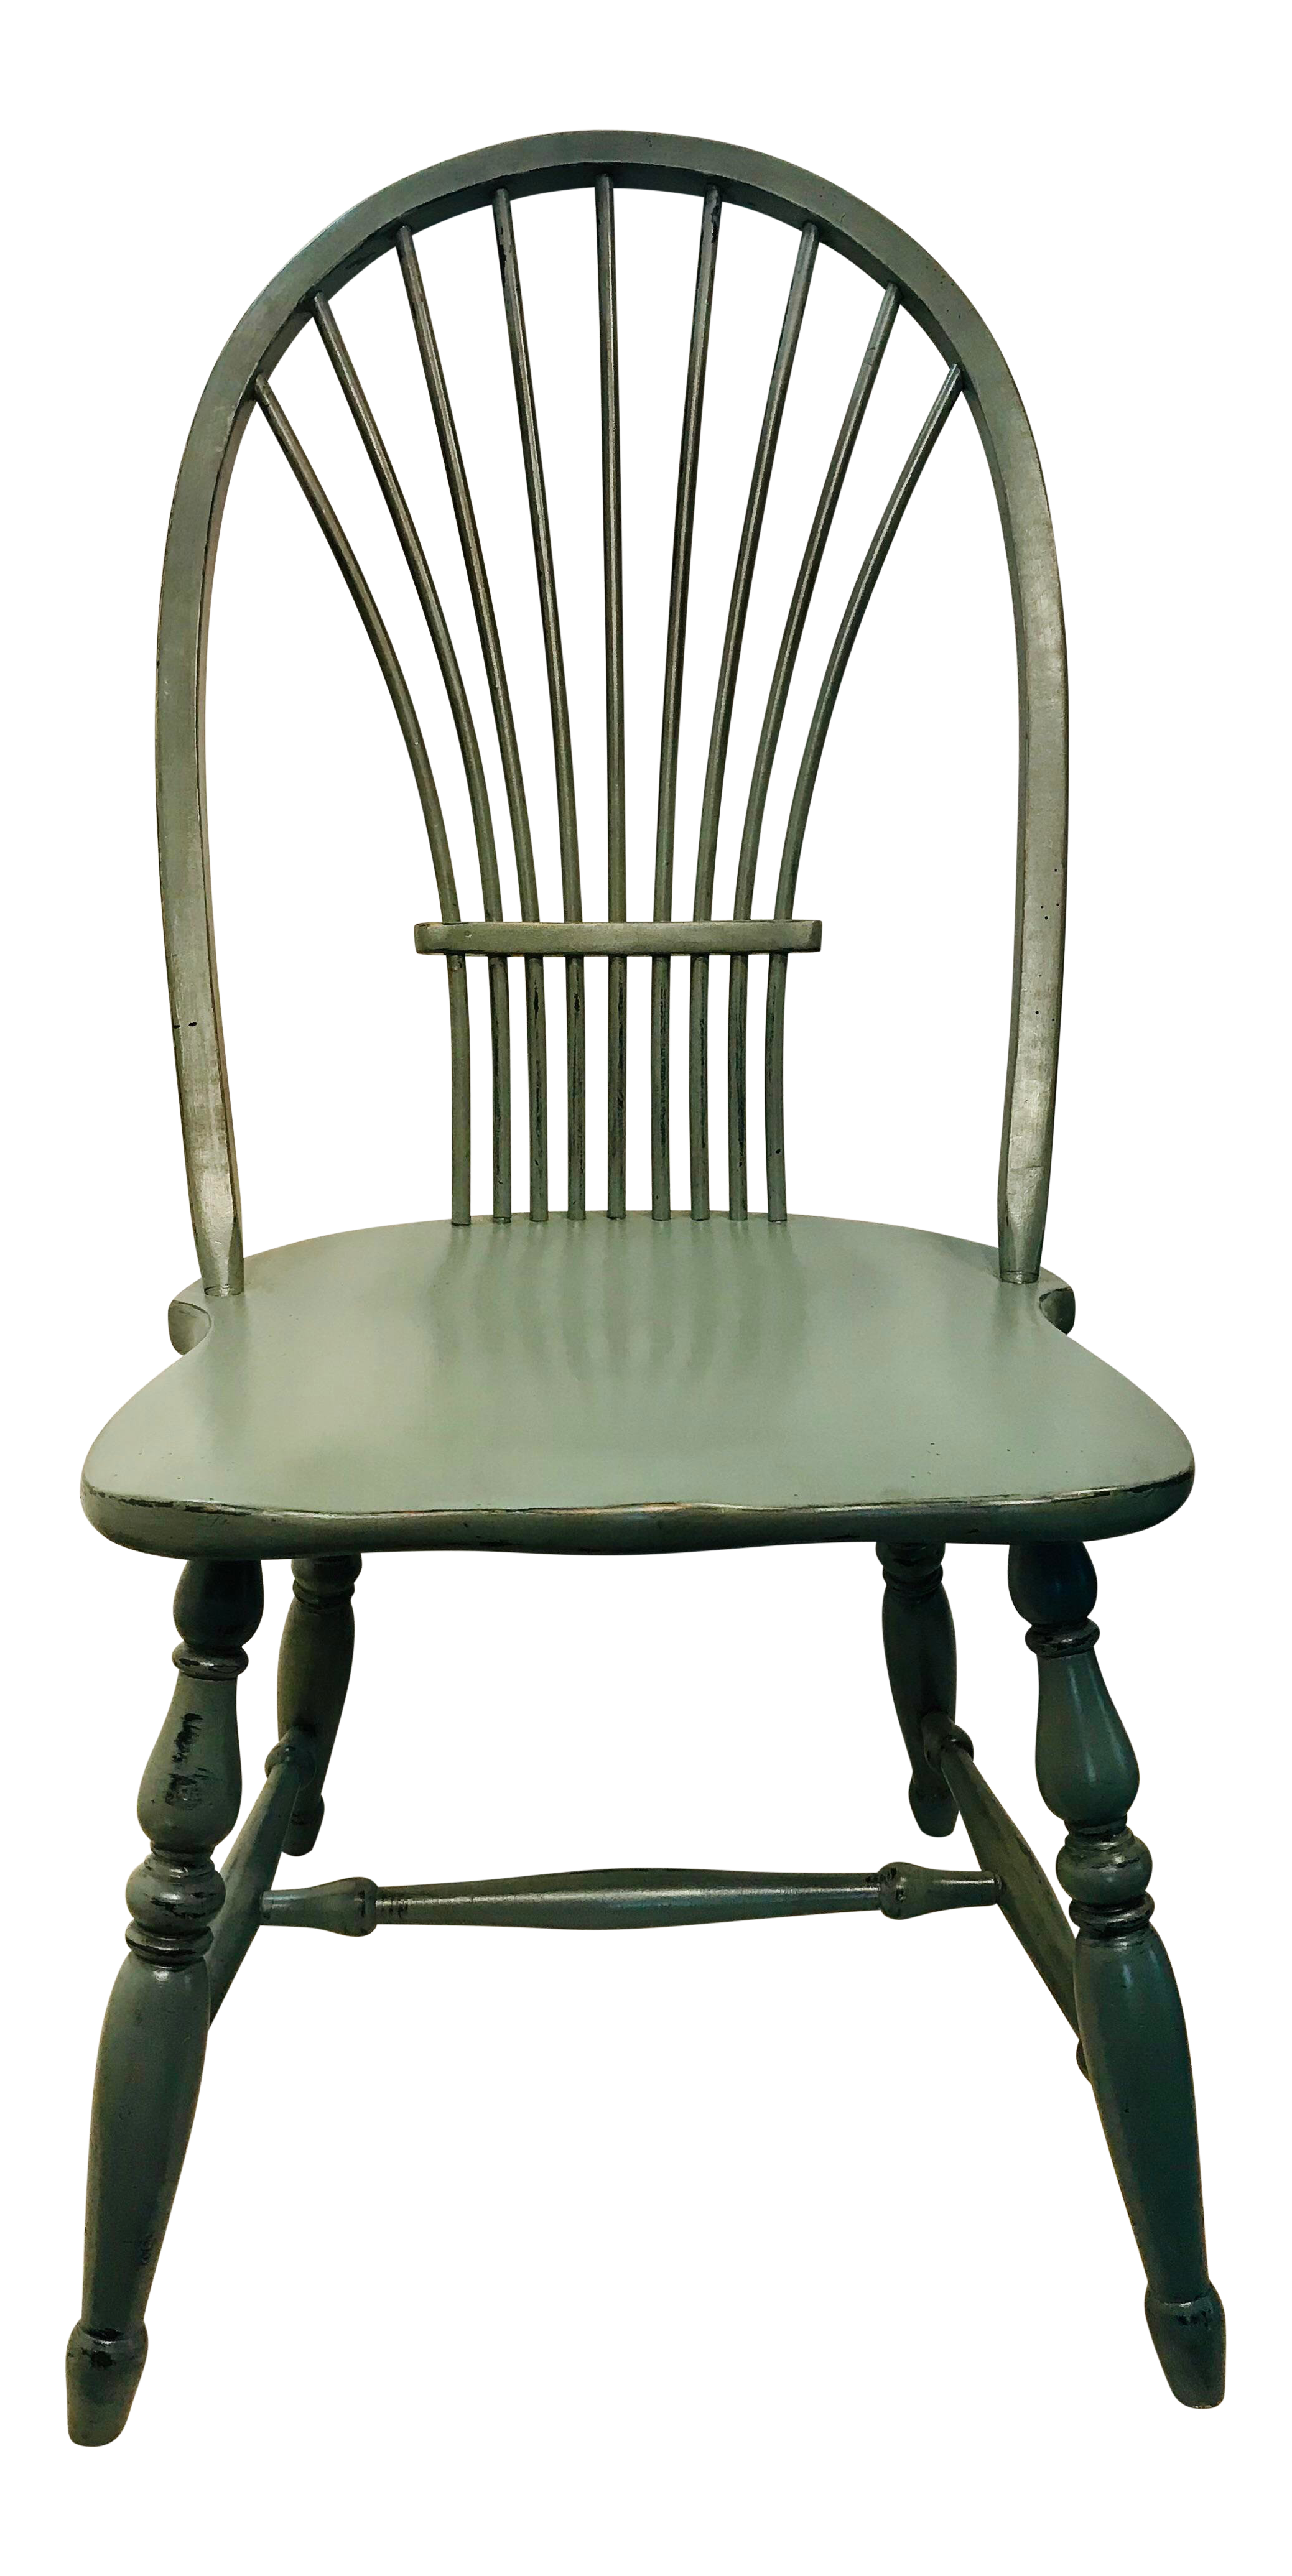 windsor chair with arms crocker company vintage used chairs for sale chairish 1970s celedon painted